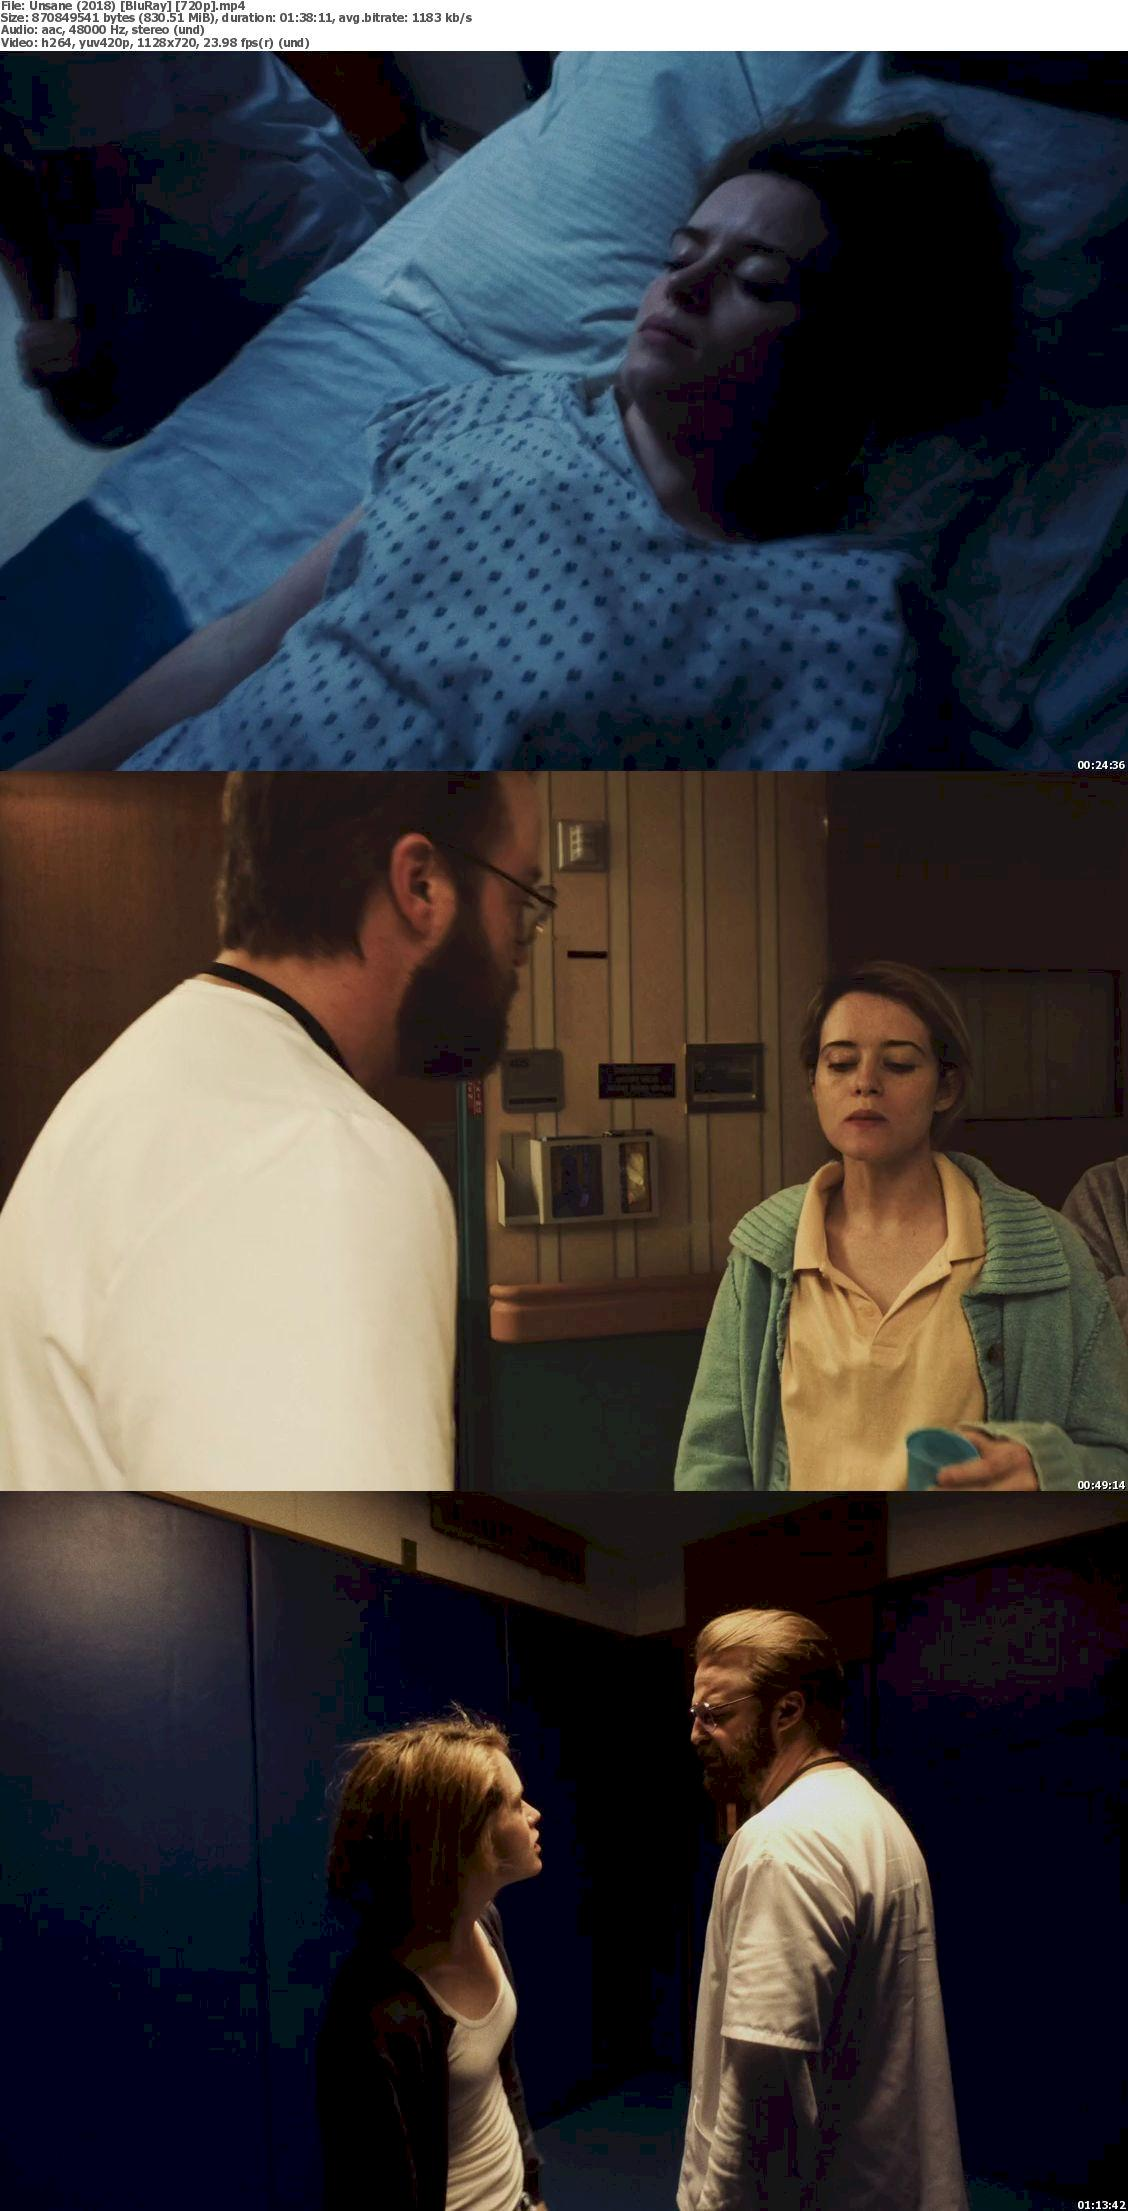 Unsane (2018) [720p & 1080p] Bluray Movie Watch Online & Download 720p Screenshot